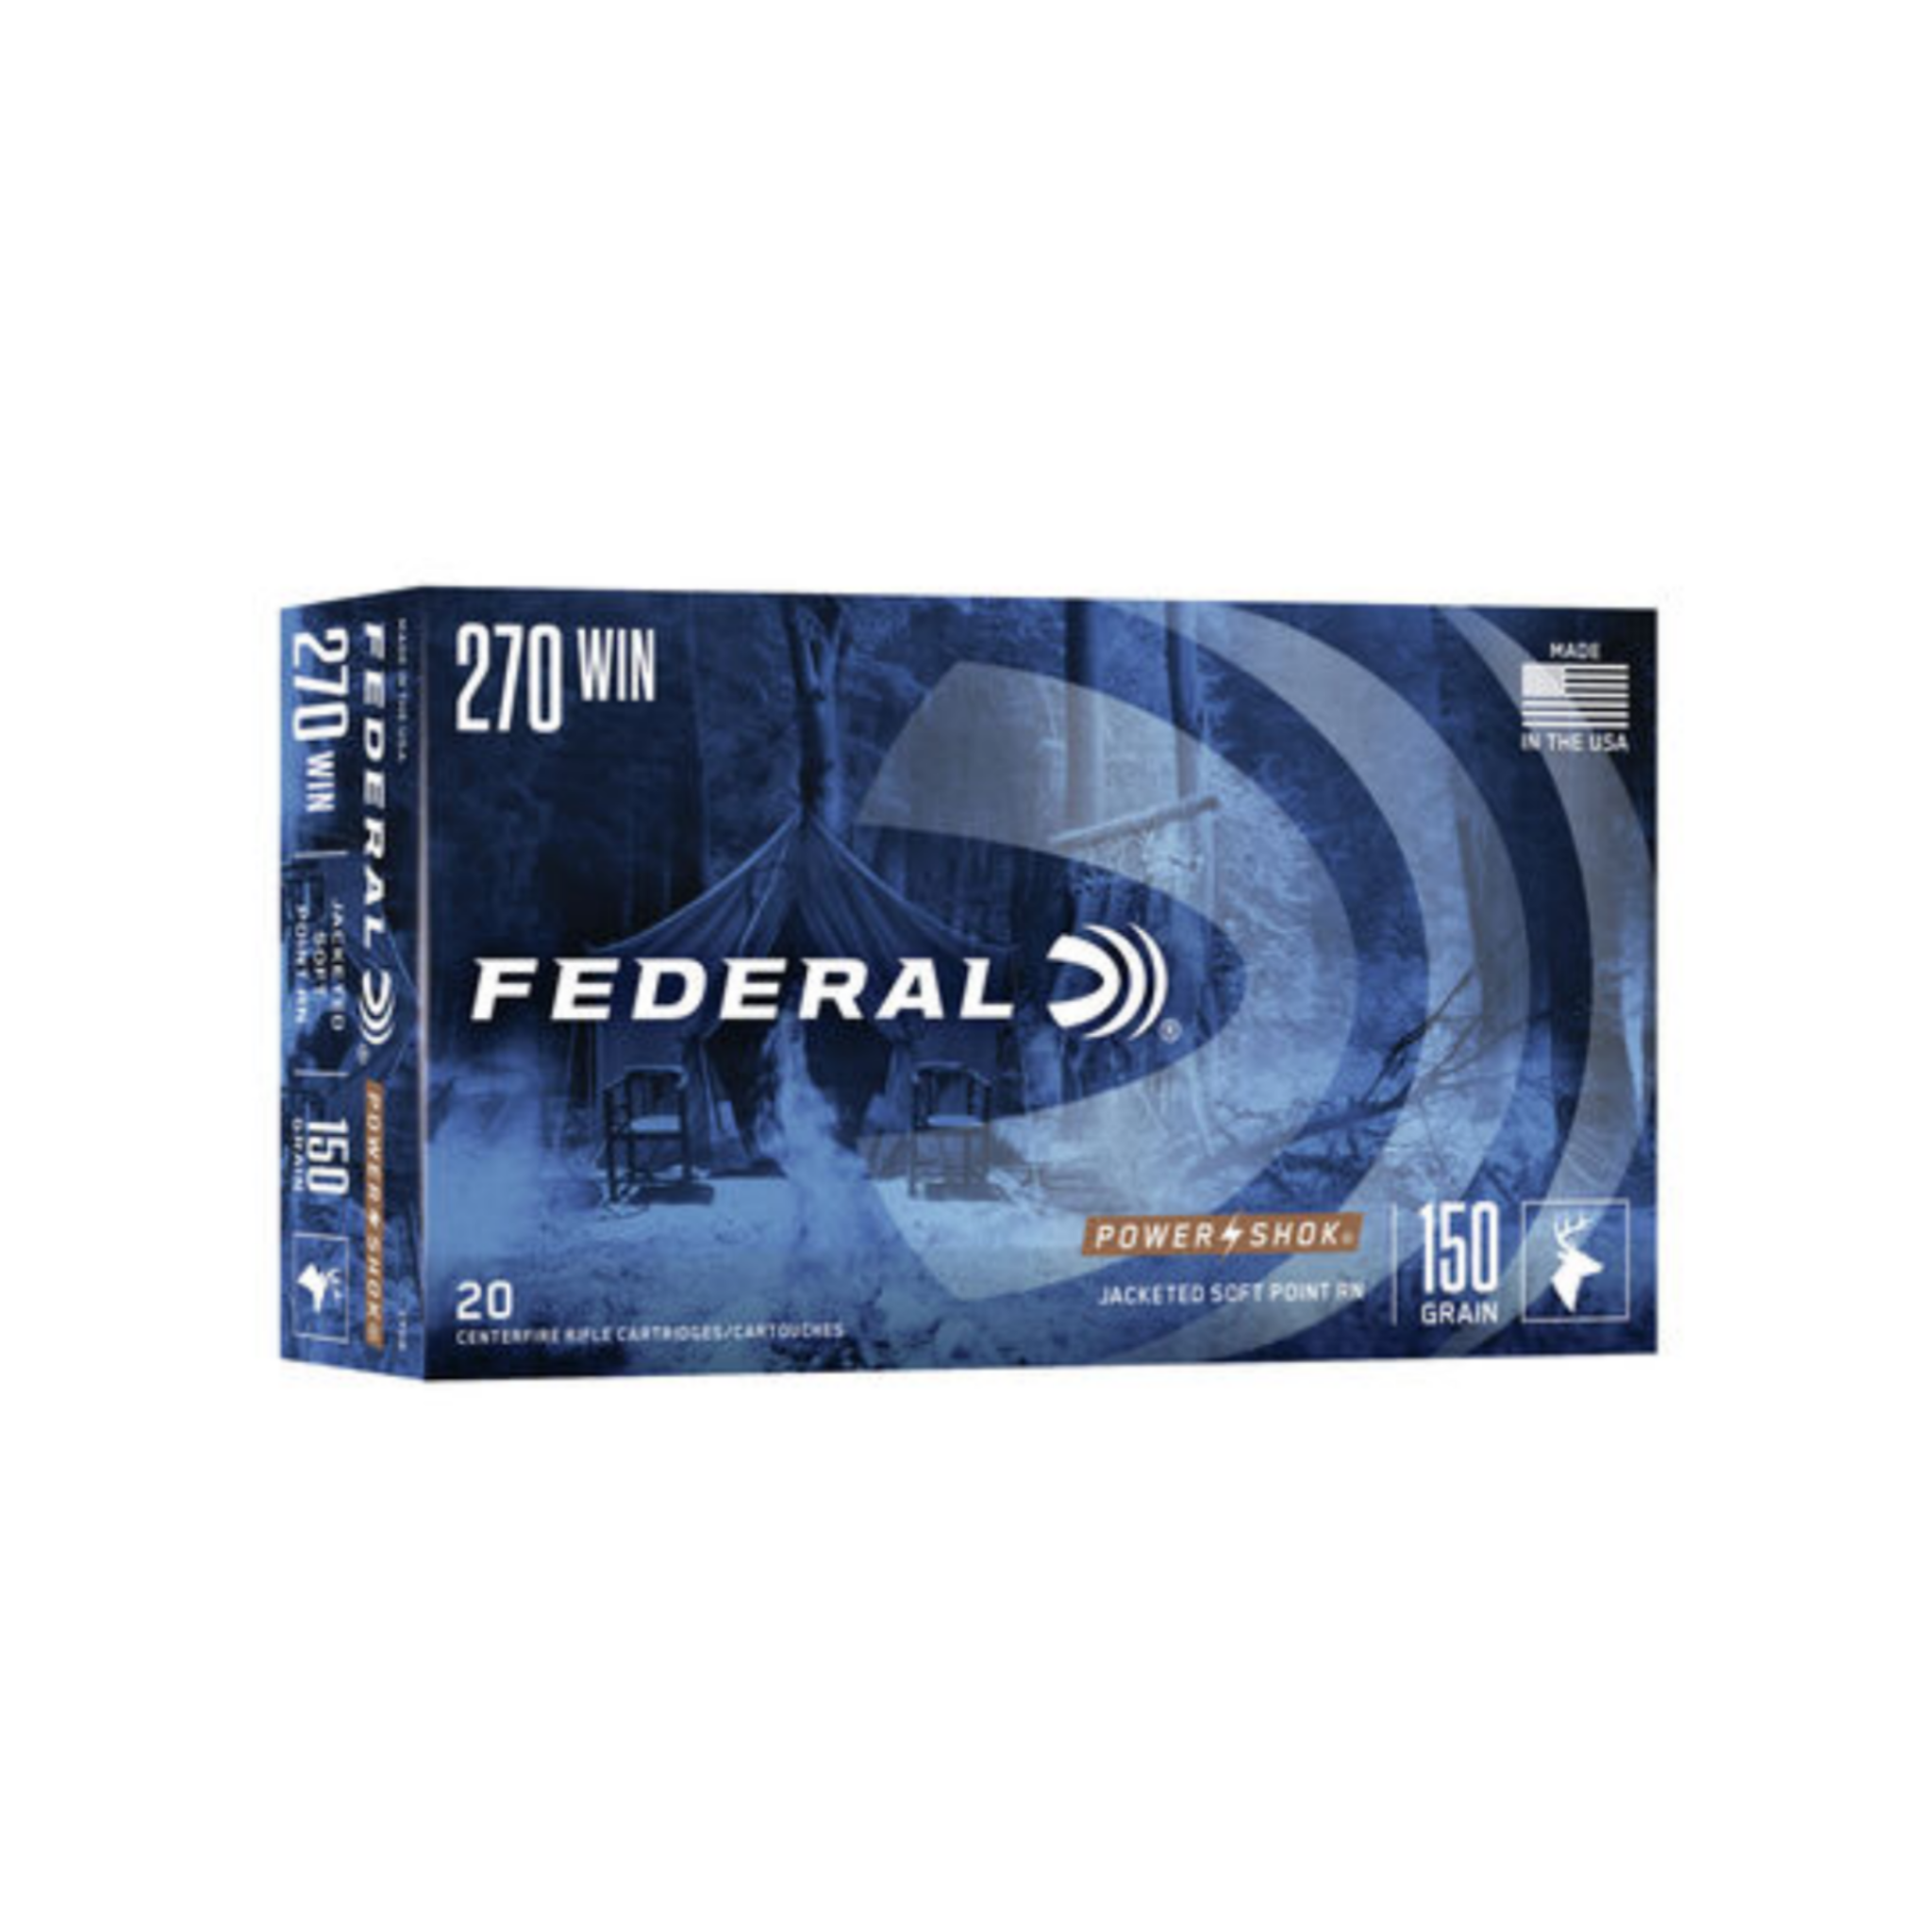 Federal .270 Win Power-Shok 150gr Soft Point Round Nose